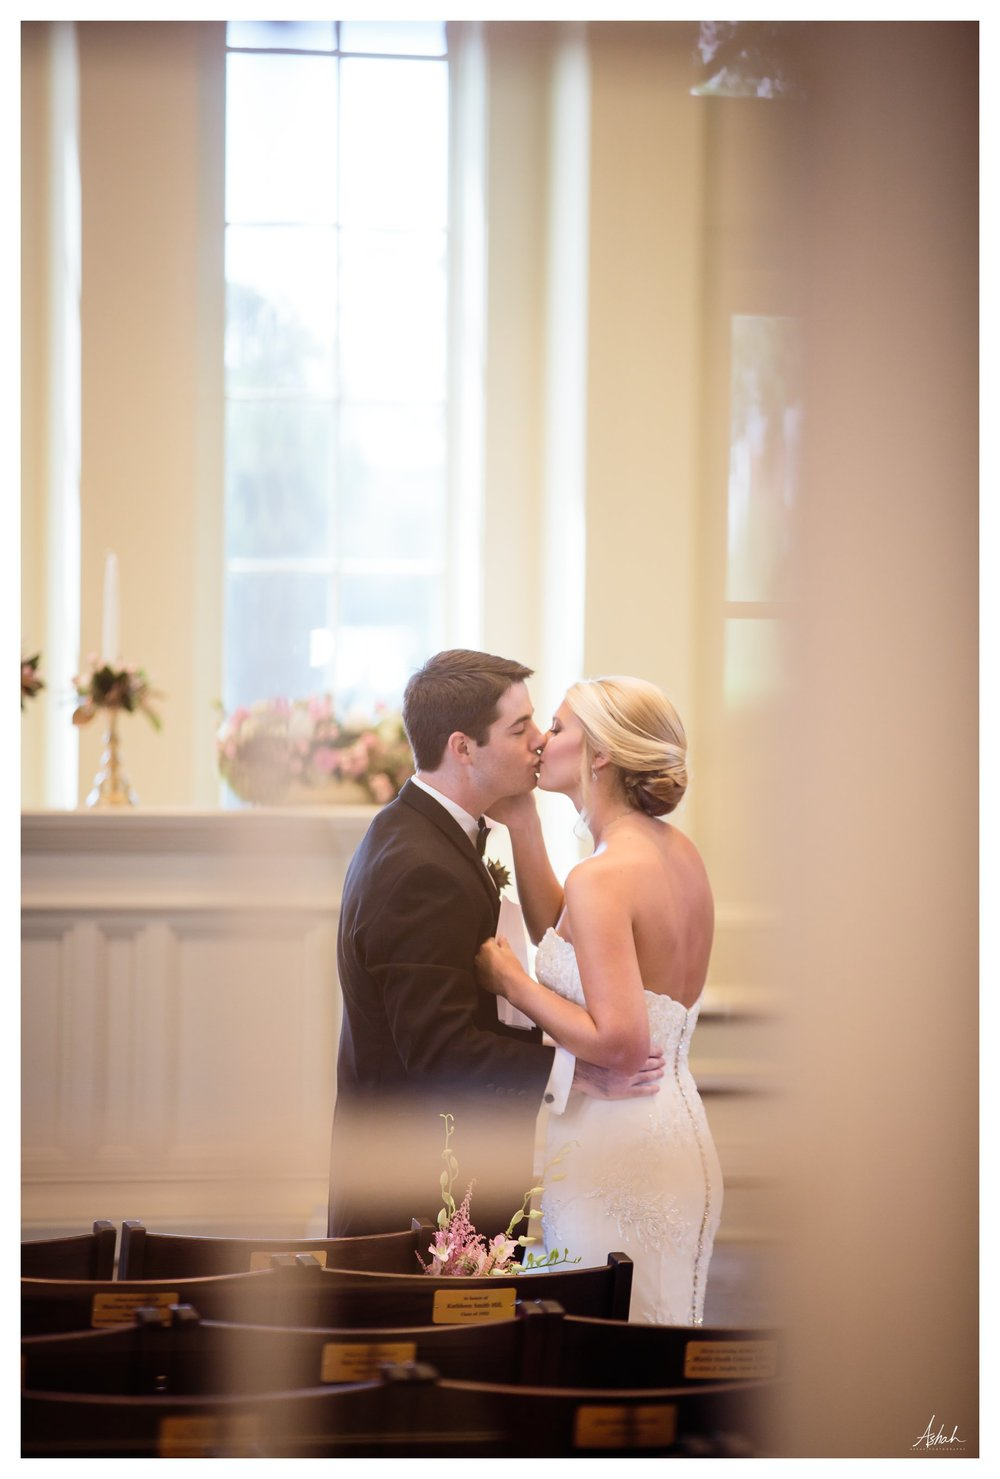 Sneaking a Kiss -  - Macon Wedding Photographer